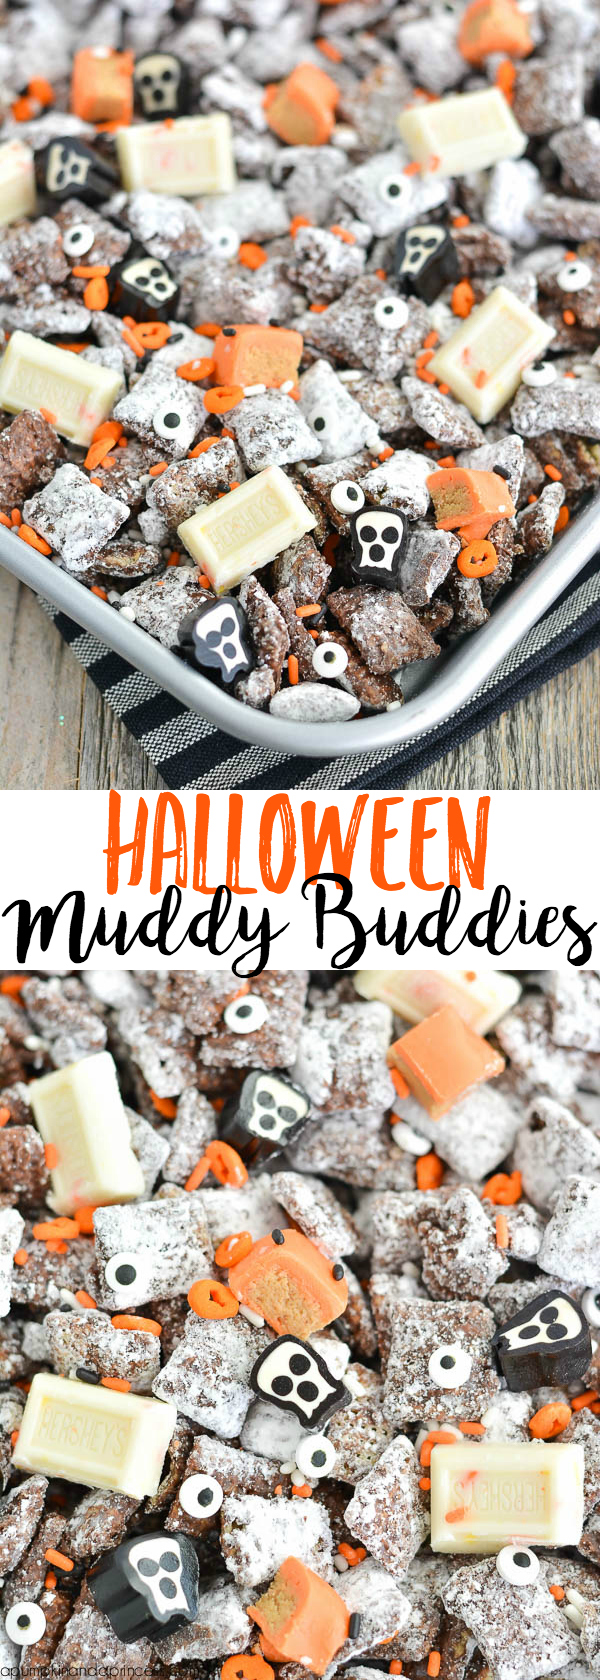 Halloween Muddy Buddies, by A Pumpkin & A Princess